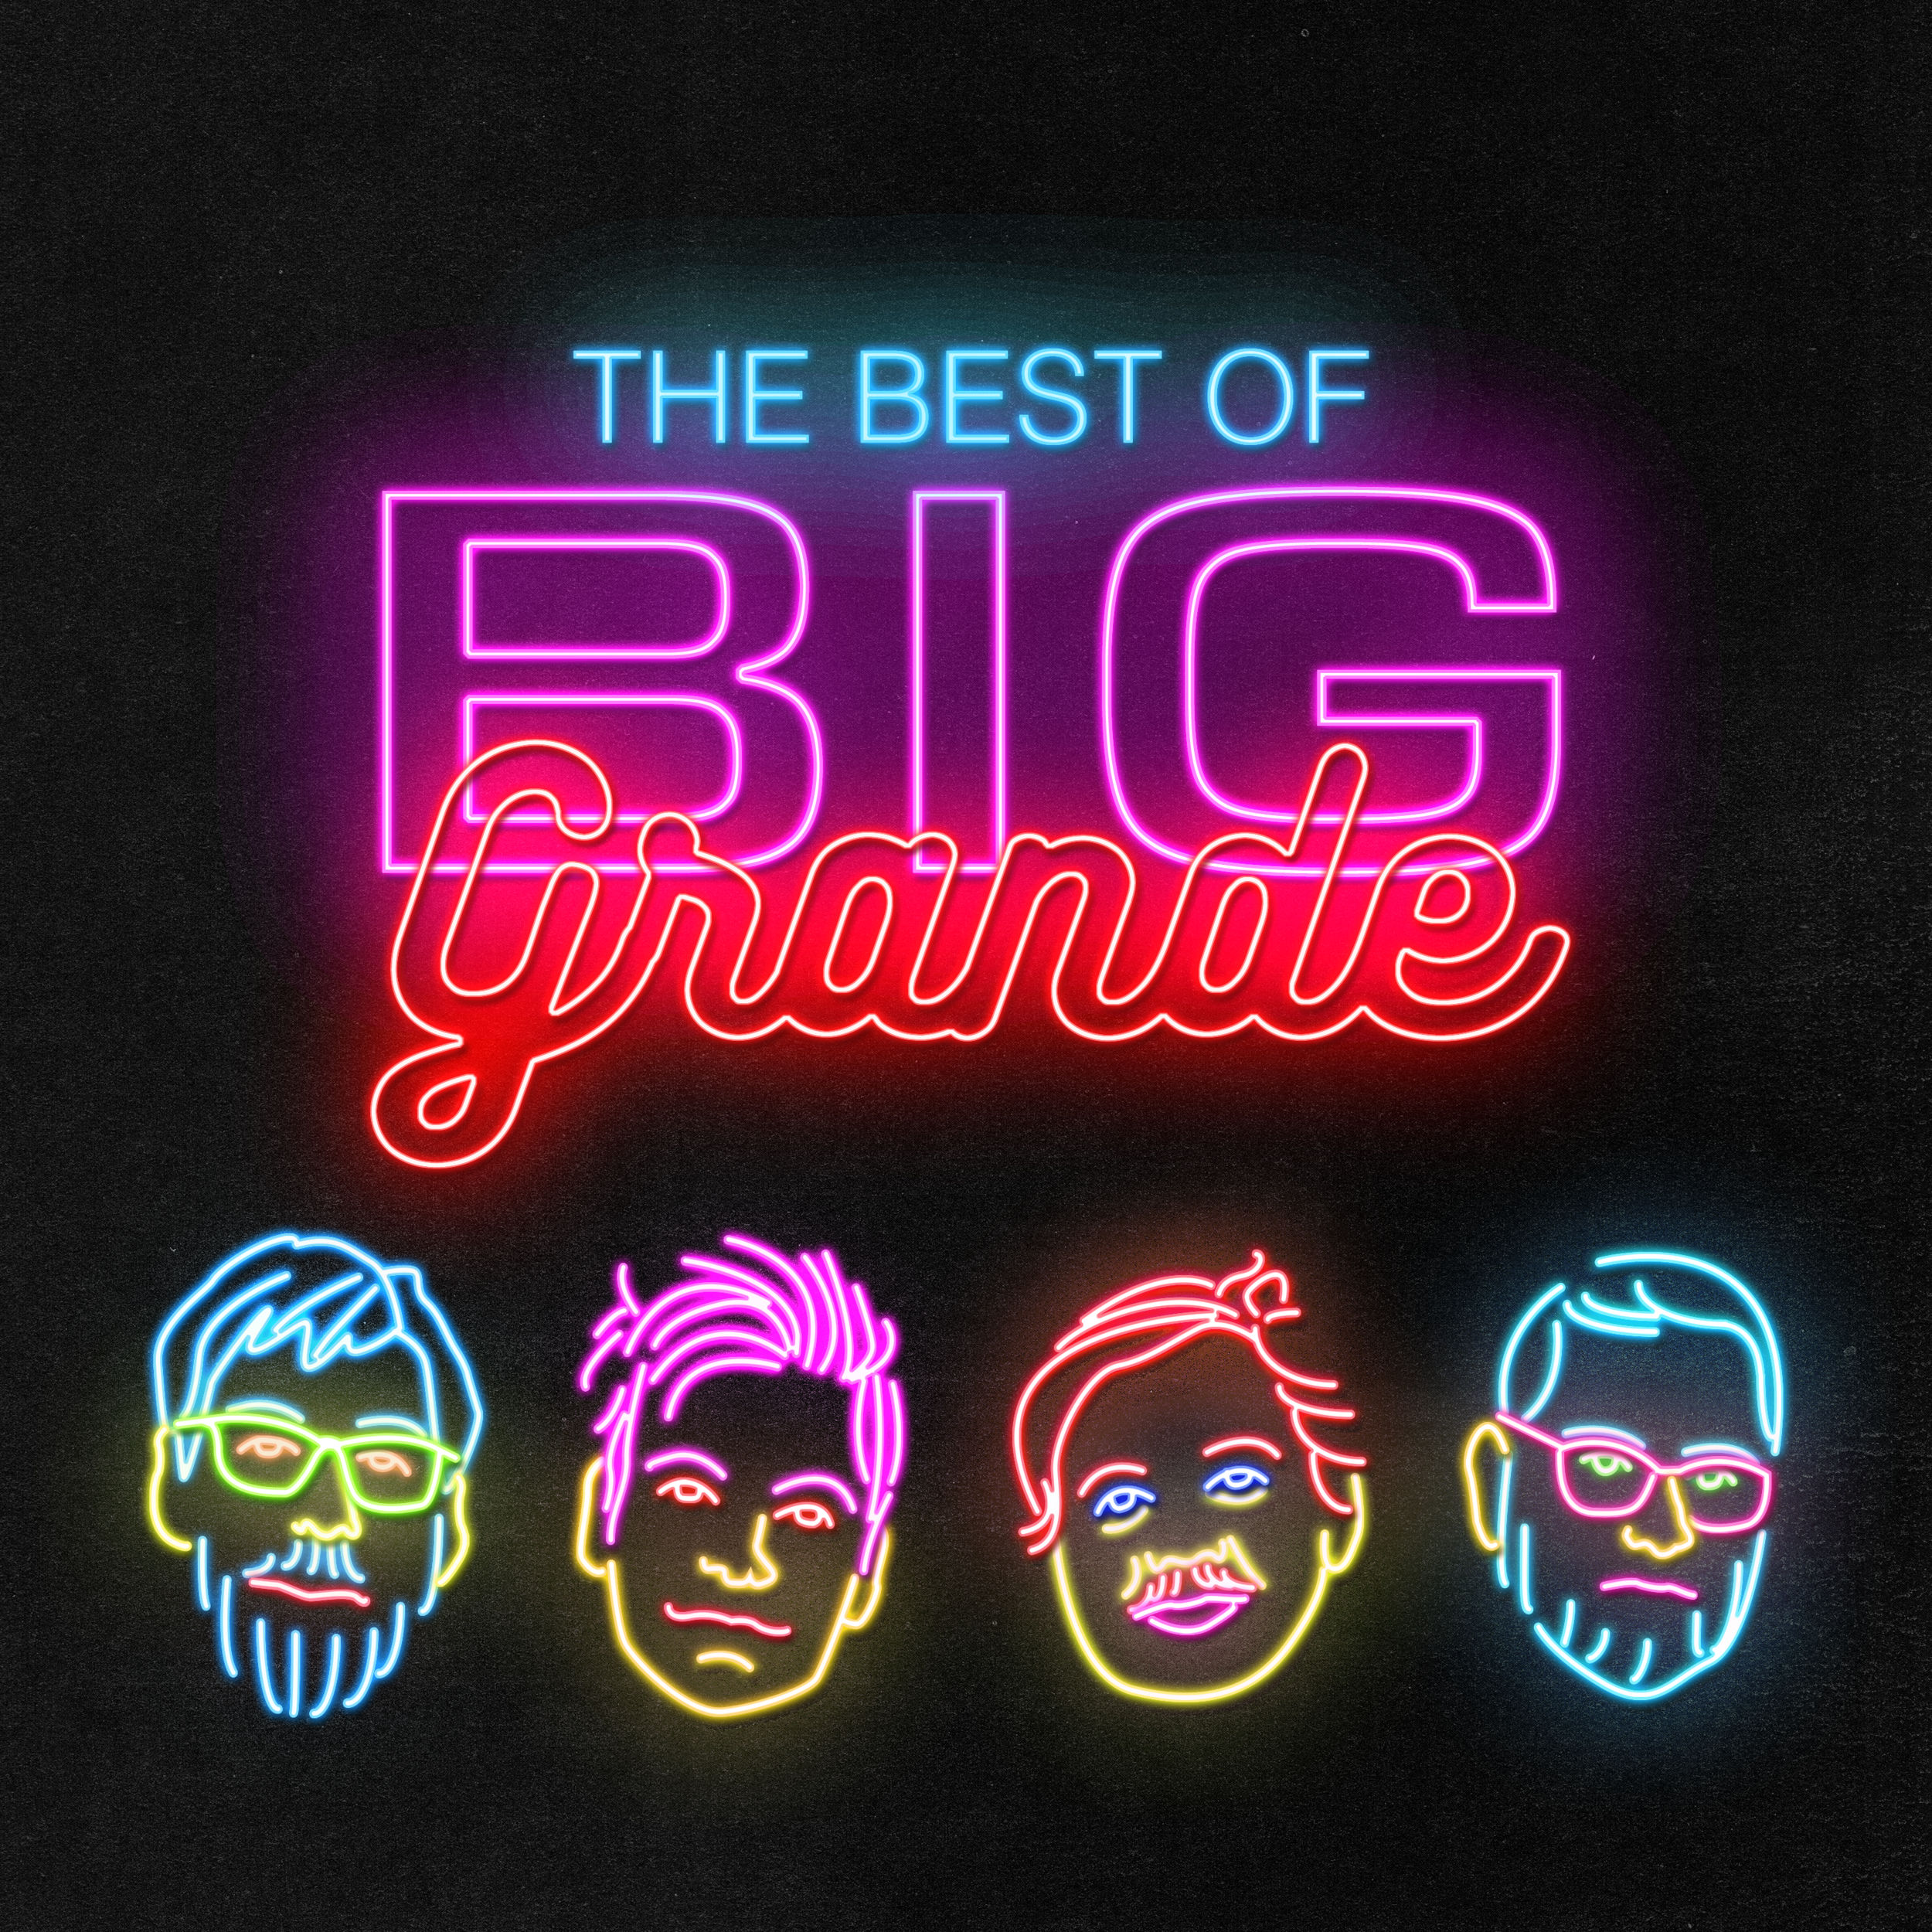 The Best of Big Grande - Podcast Art